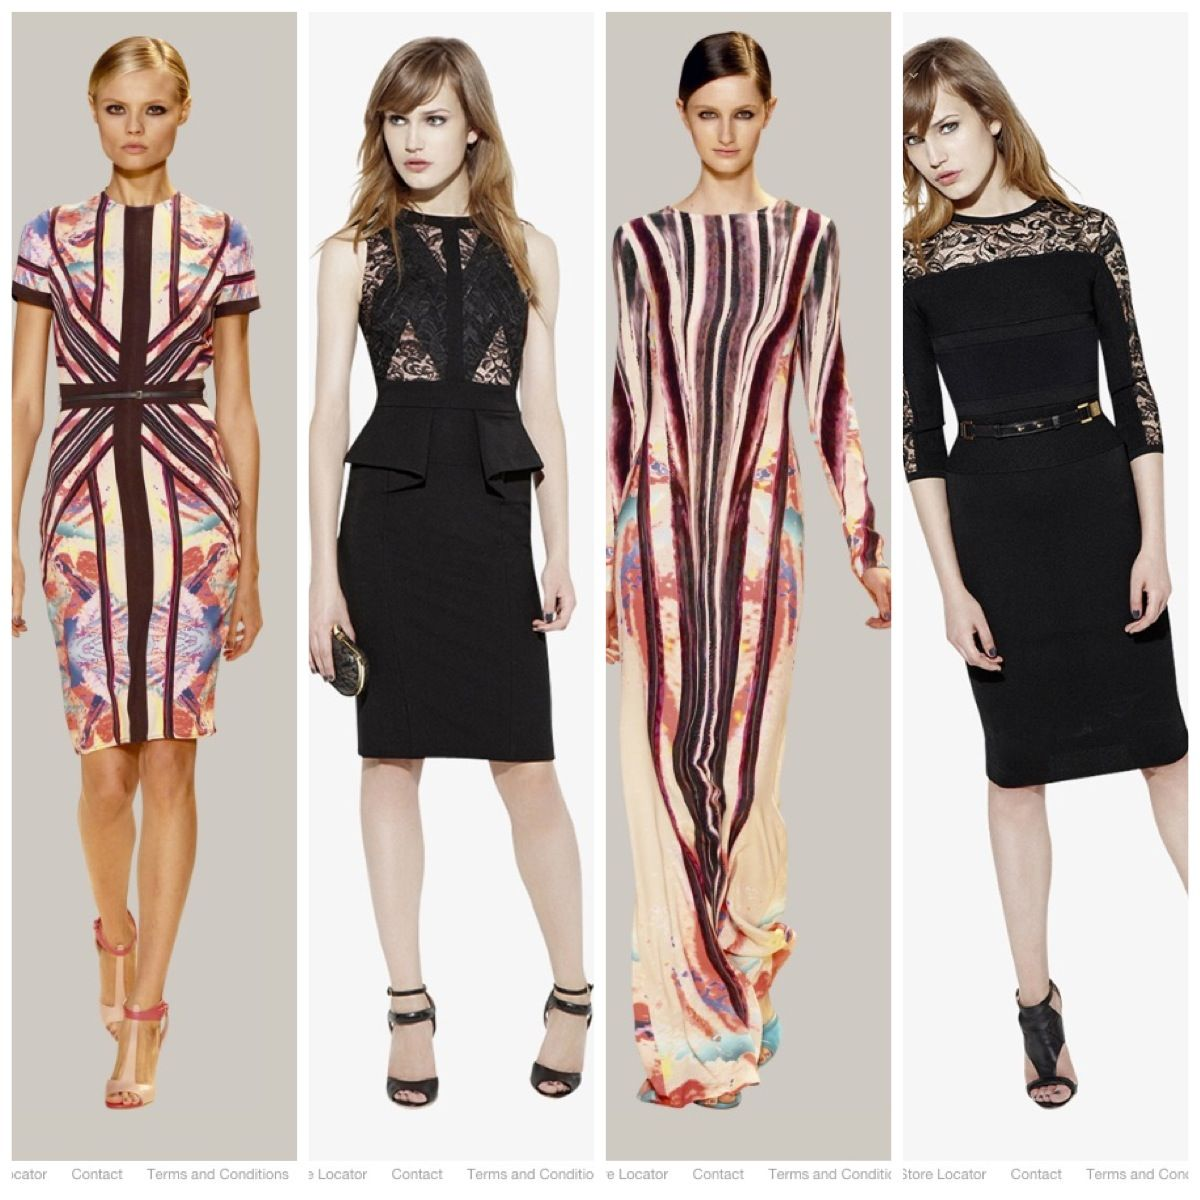 Eliee Saab dresses! My all time favorite designer. He is a genius!